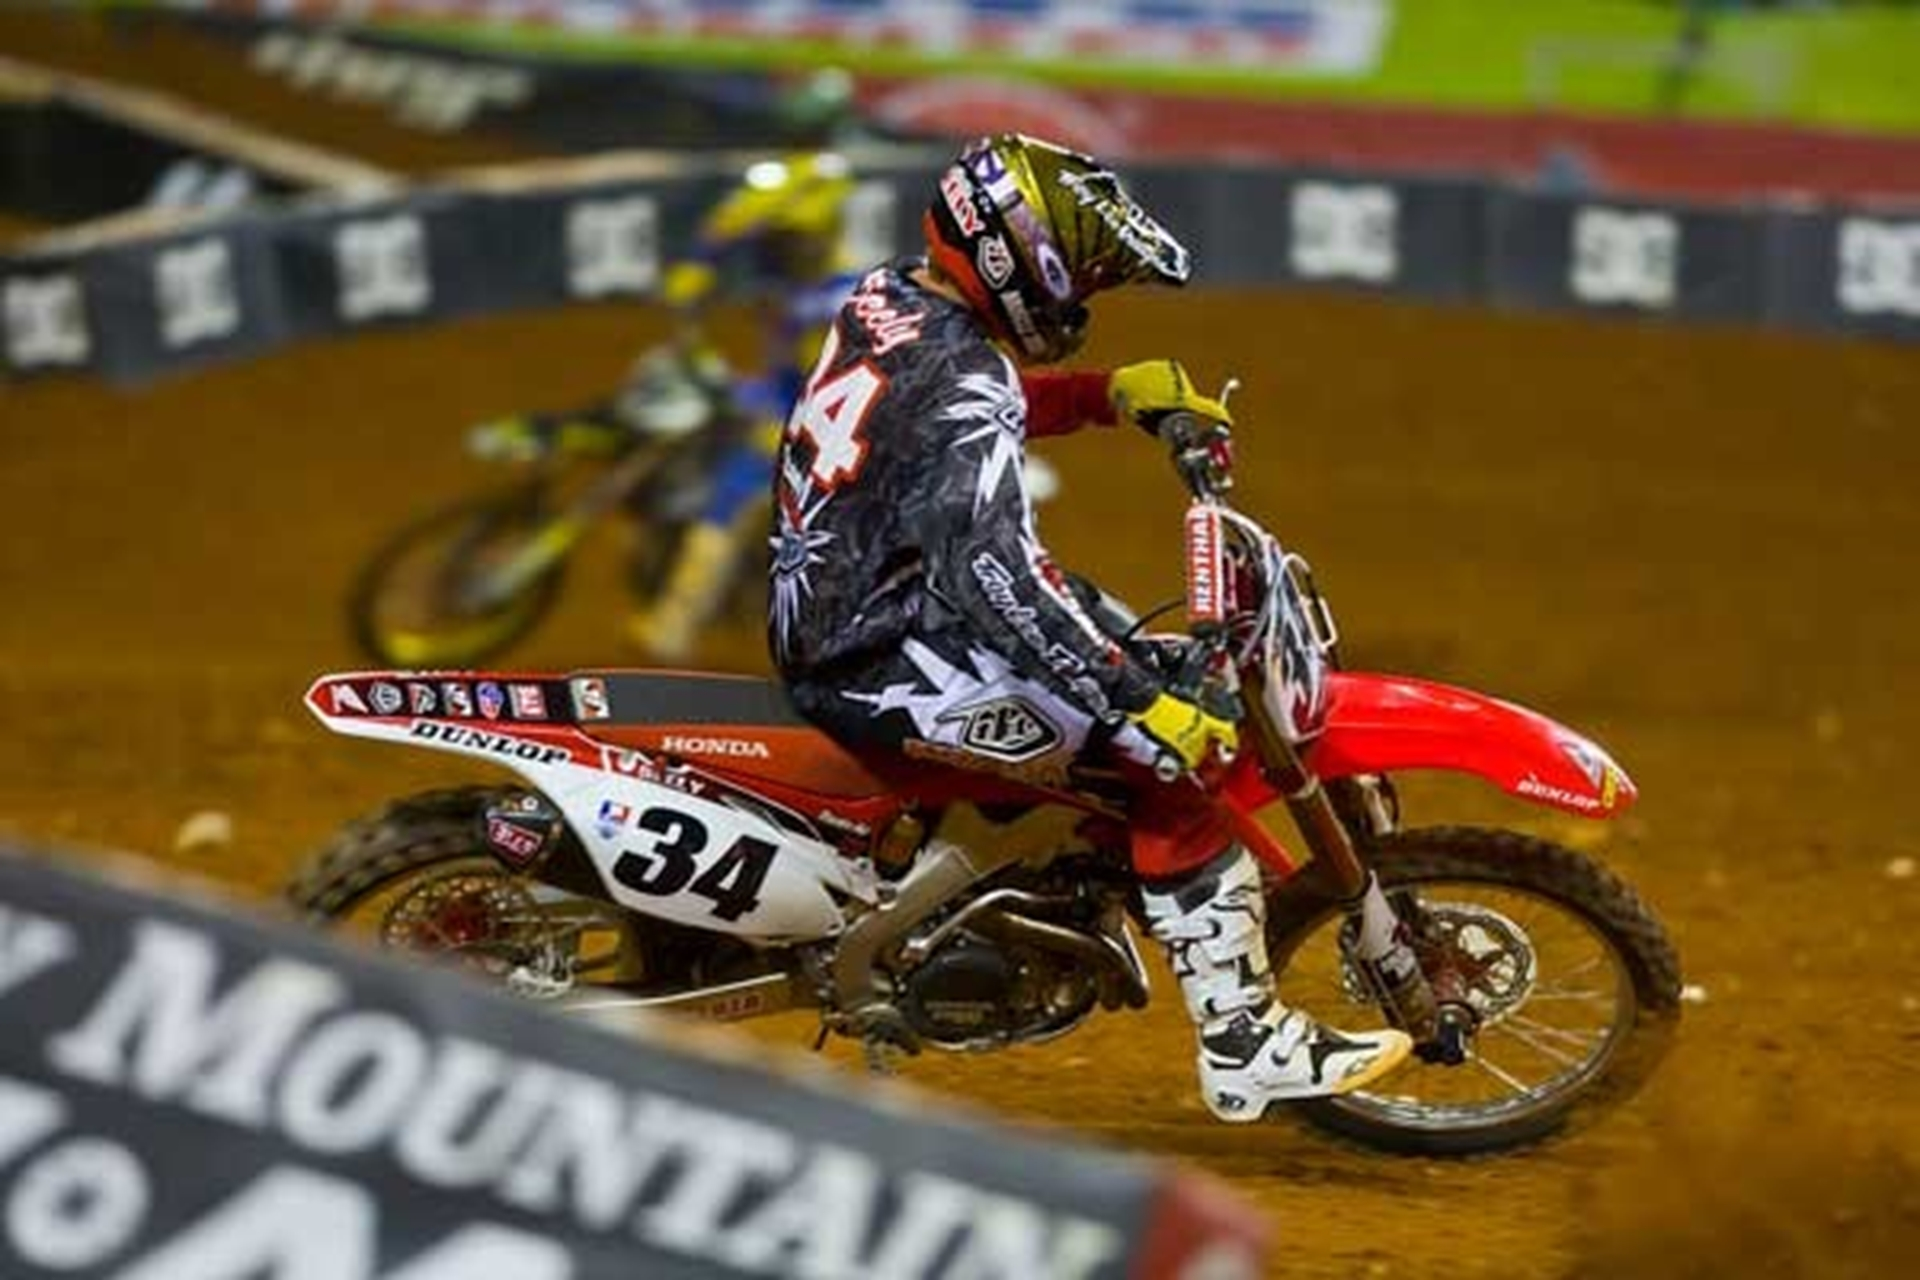 Atlanta Supercross